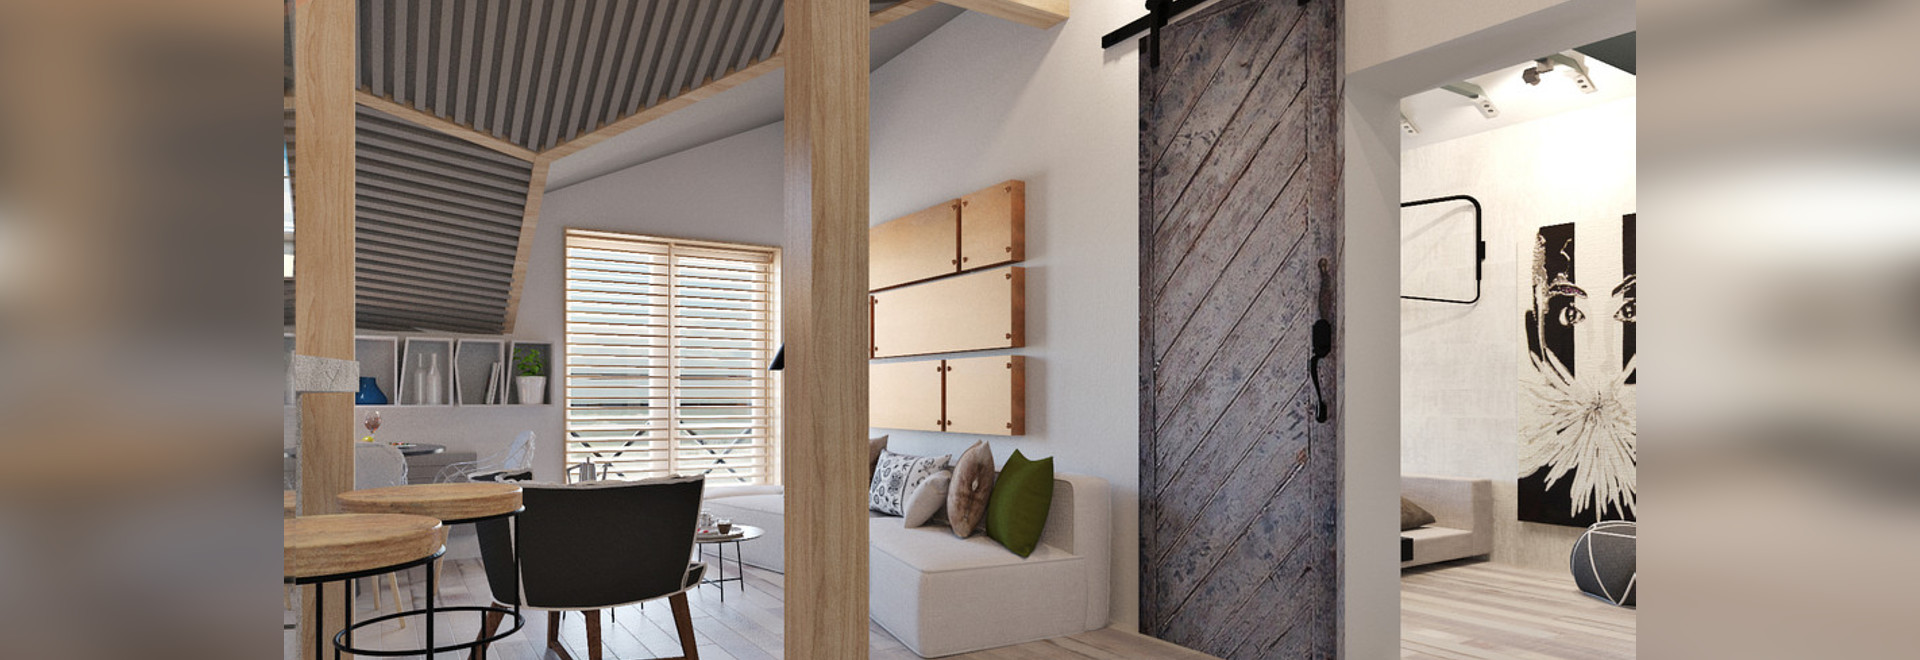 4 Small Studio Apartments Decorated in 4 Different Styles (All ...